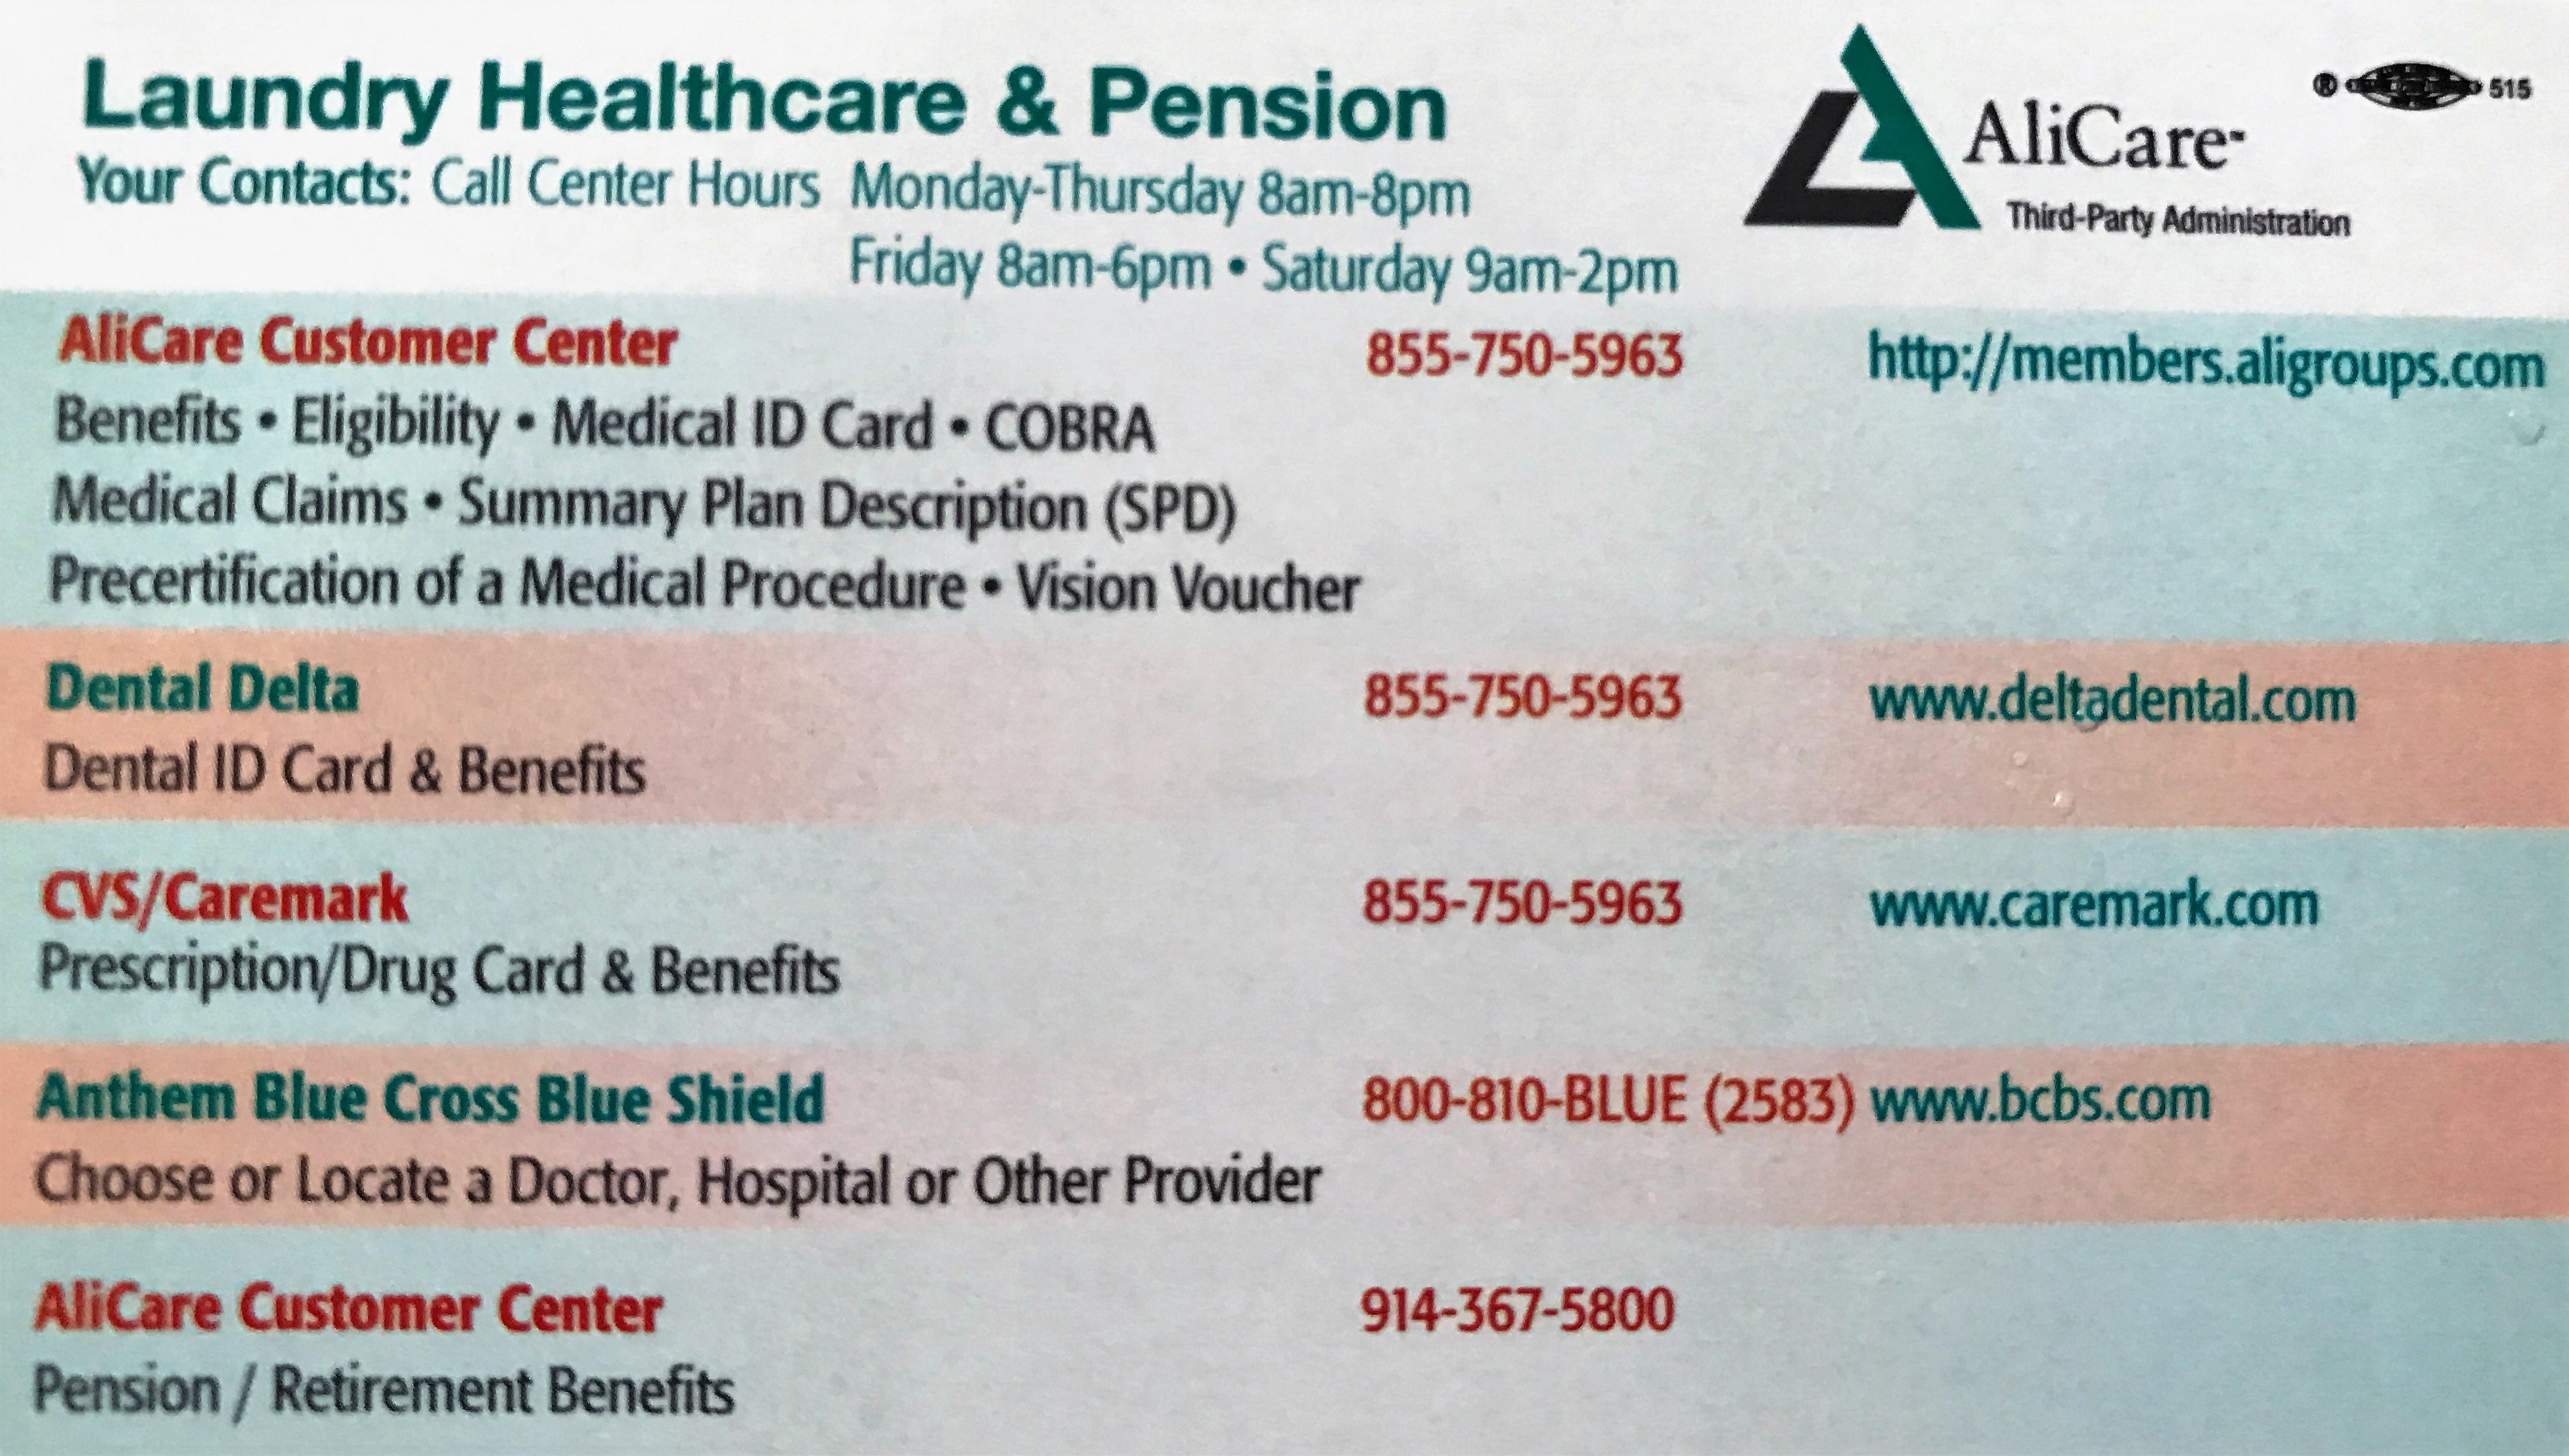 Laundry Healthcare & Pension Fund - Laundry Distribution